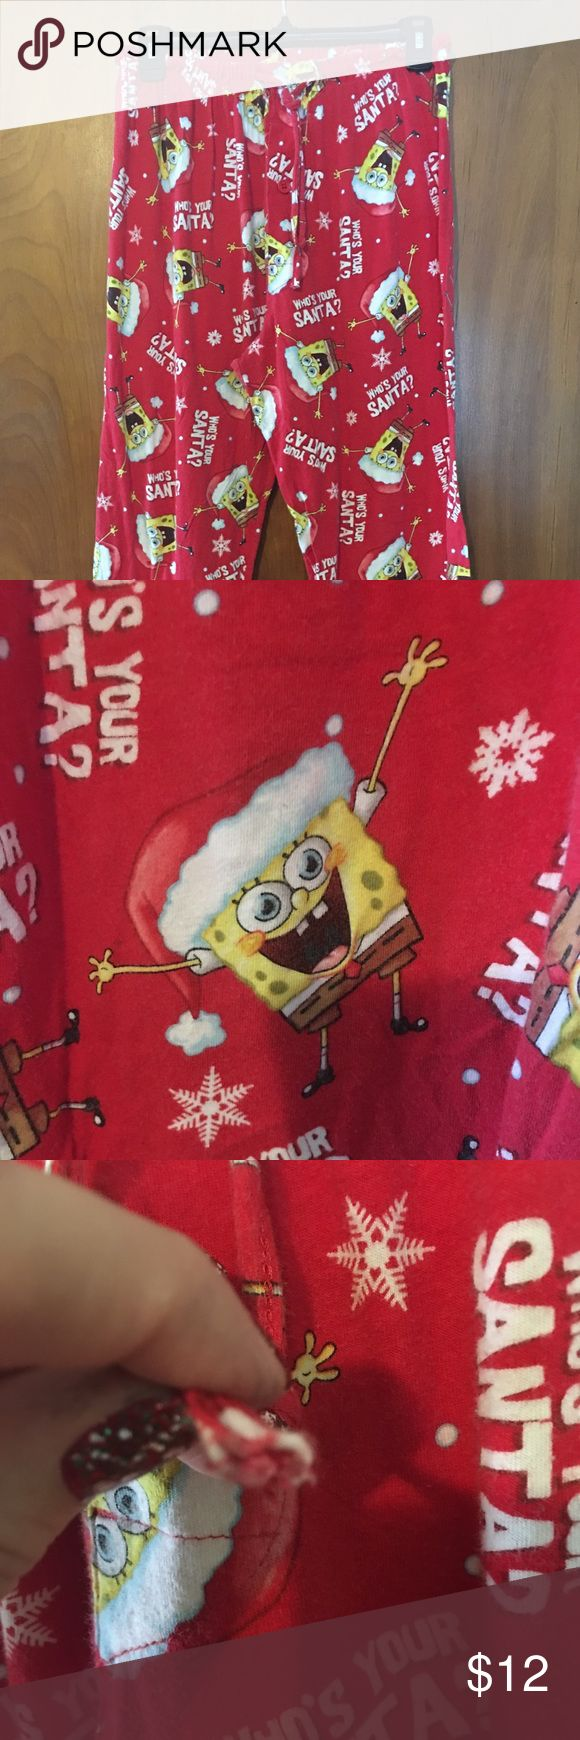 Nickelodeon Spongebob Santa Pajama Pants Mens Sz M Nickelodeon Spongebob Whos Your Santa Red Pajama Pants Mens Sz M. Good preowned condition. Minor loose strings. One drawstring missing tie tip. See photos.   Measurements: (approximate)  Length: 36 inches  Hip: 24 inches (double for complete around measurement)  Waist: 14 inches unstretched (double for complete around measurement)  Inseam: 27 inches Nickelodeon Pants Sweatpants & Joggers